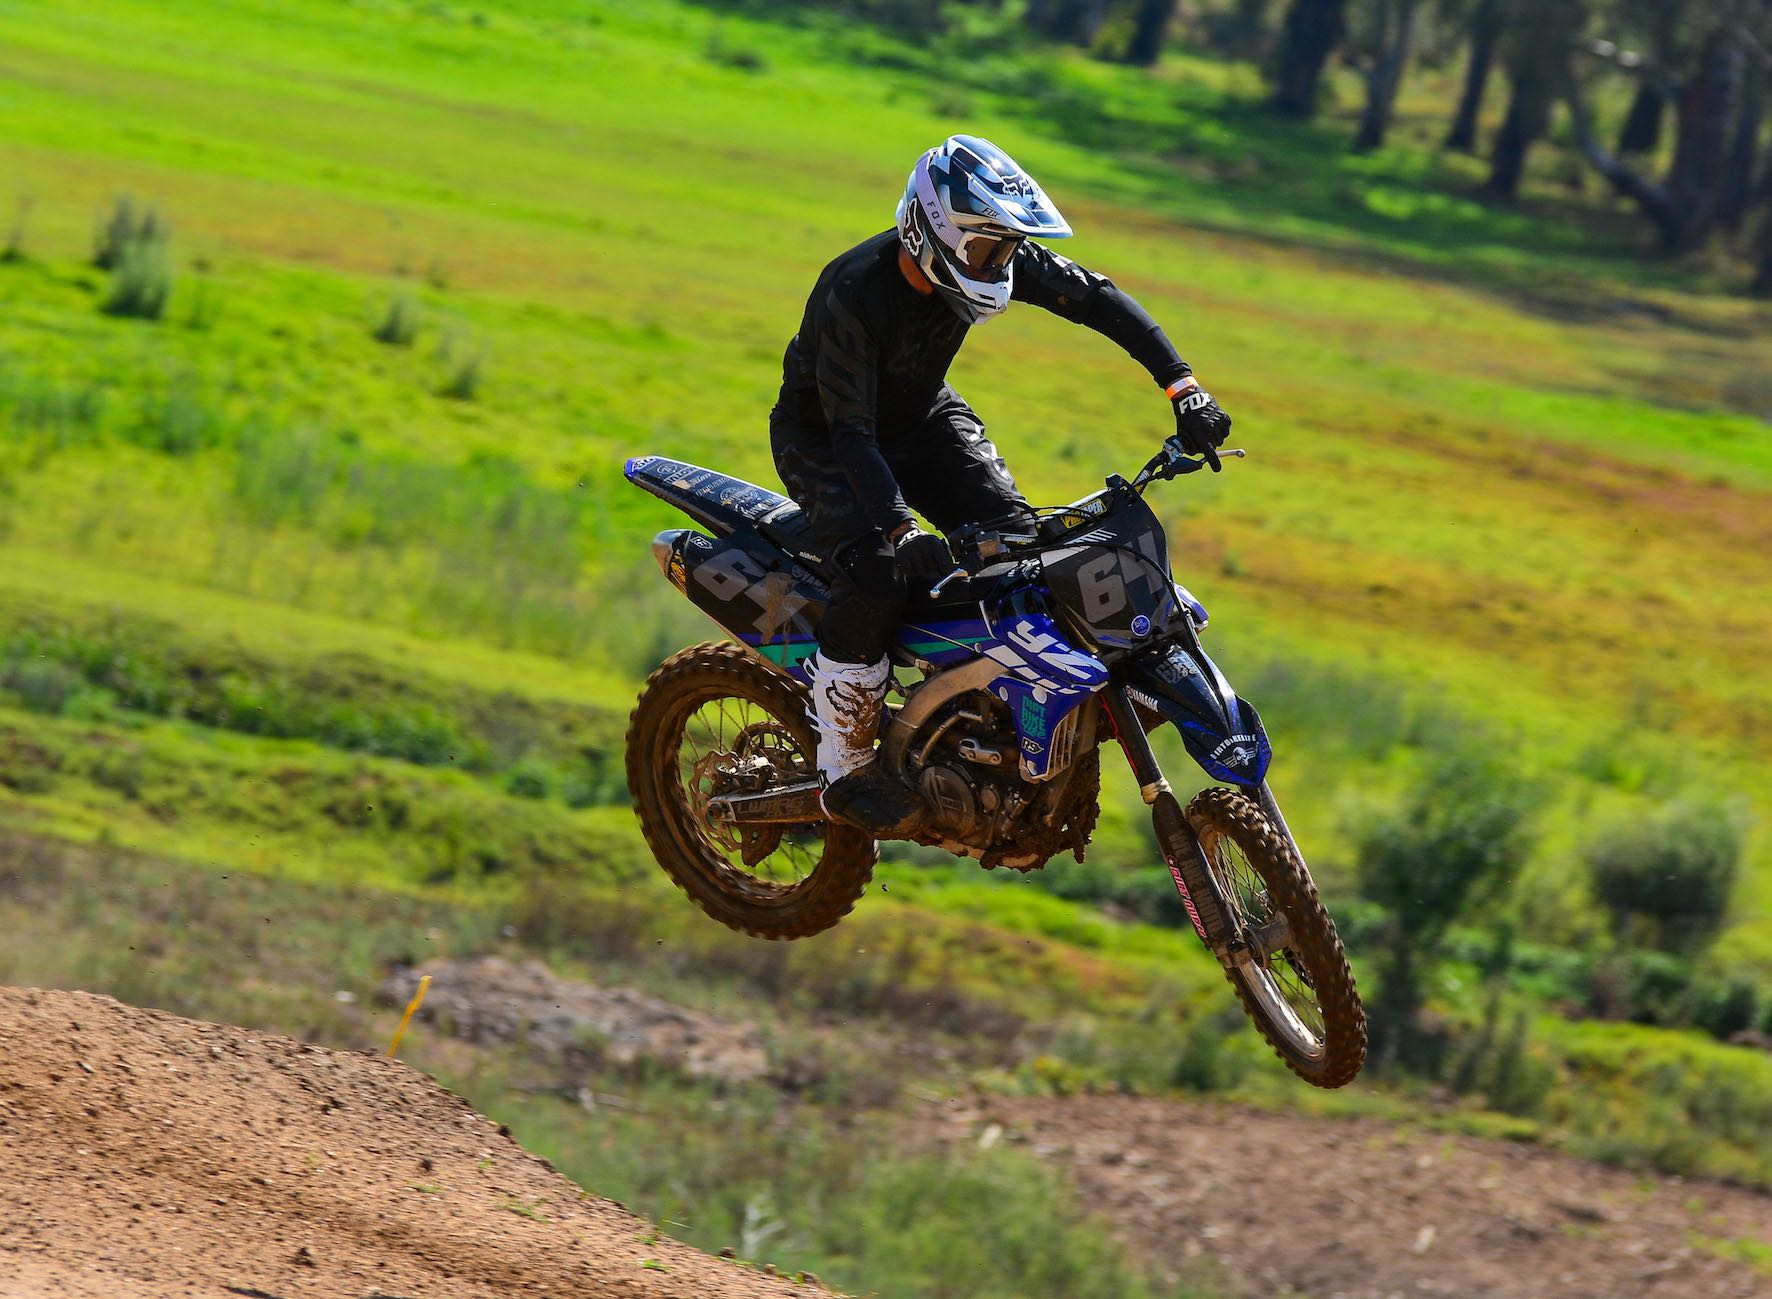 Enjoying the Fox Vue Goggles while out riding MX